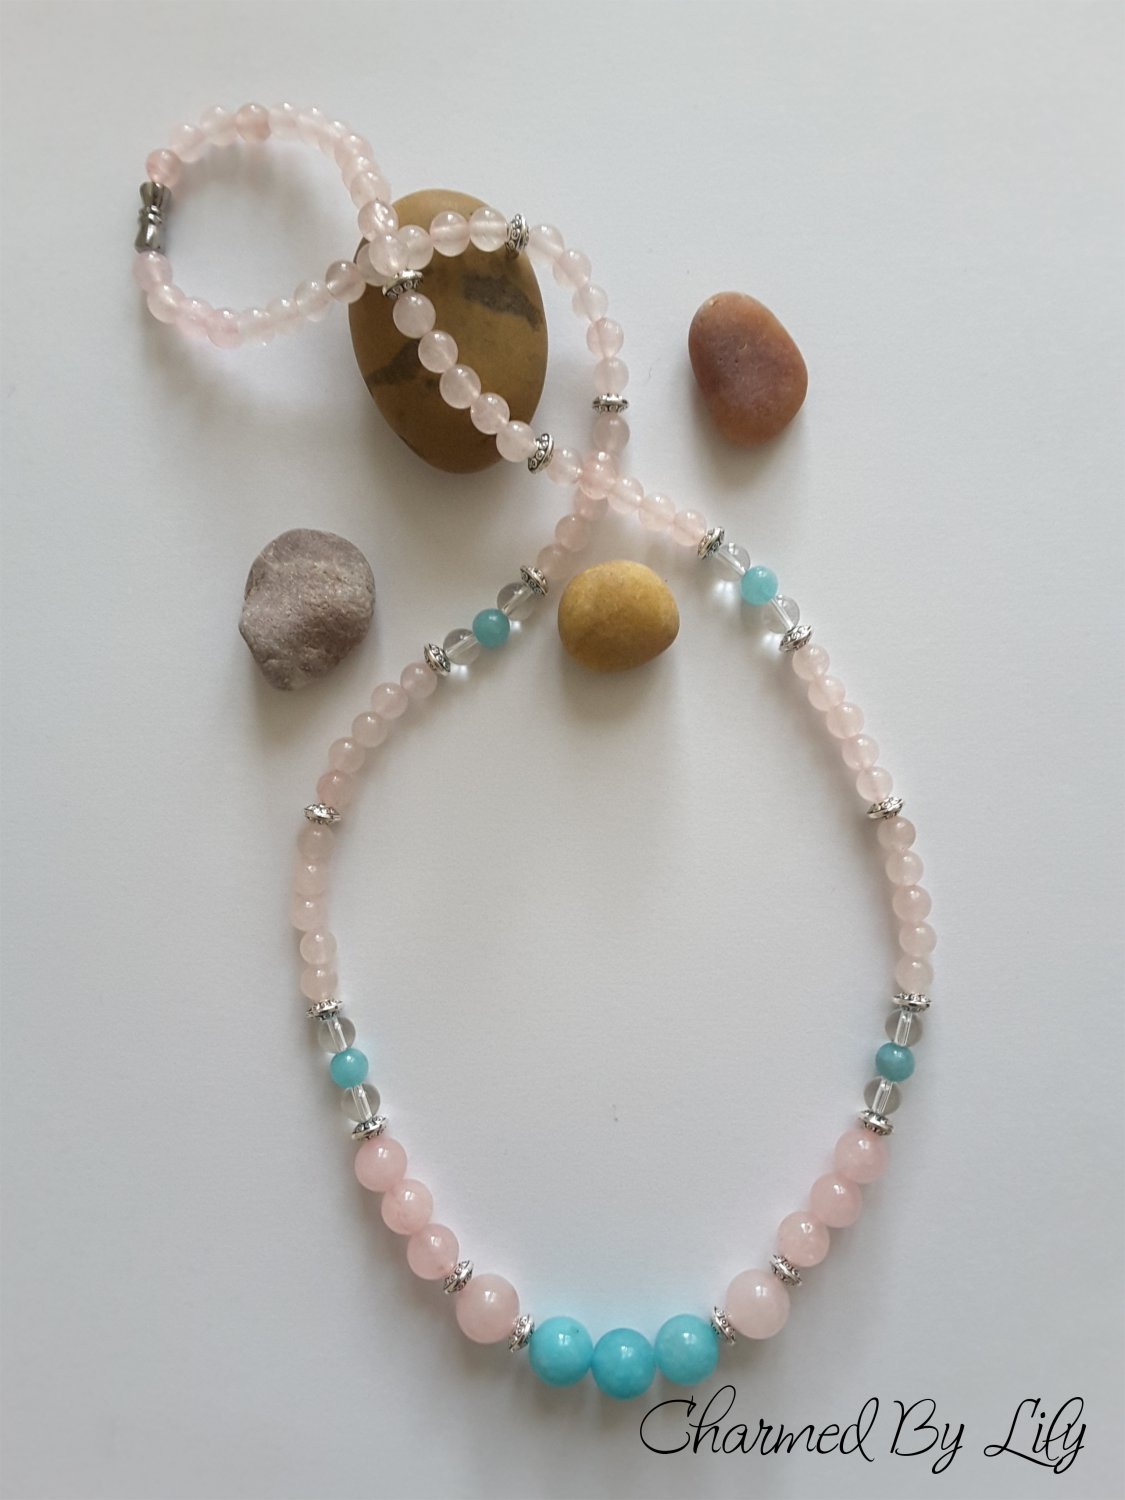 Rose Quartz And Amazonite Necklace. Genuine Rose Quartz, Amazonite and Clear Quartz Stones.